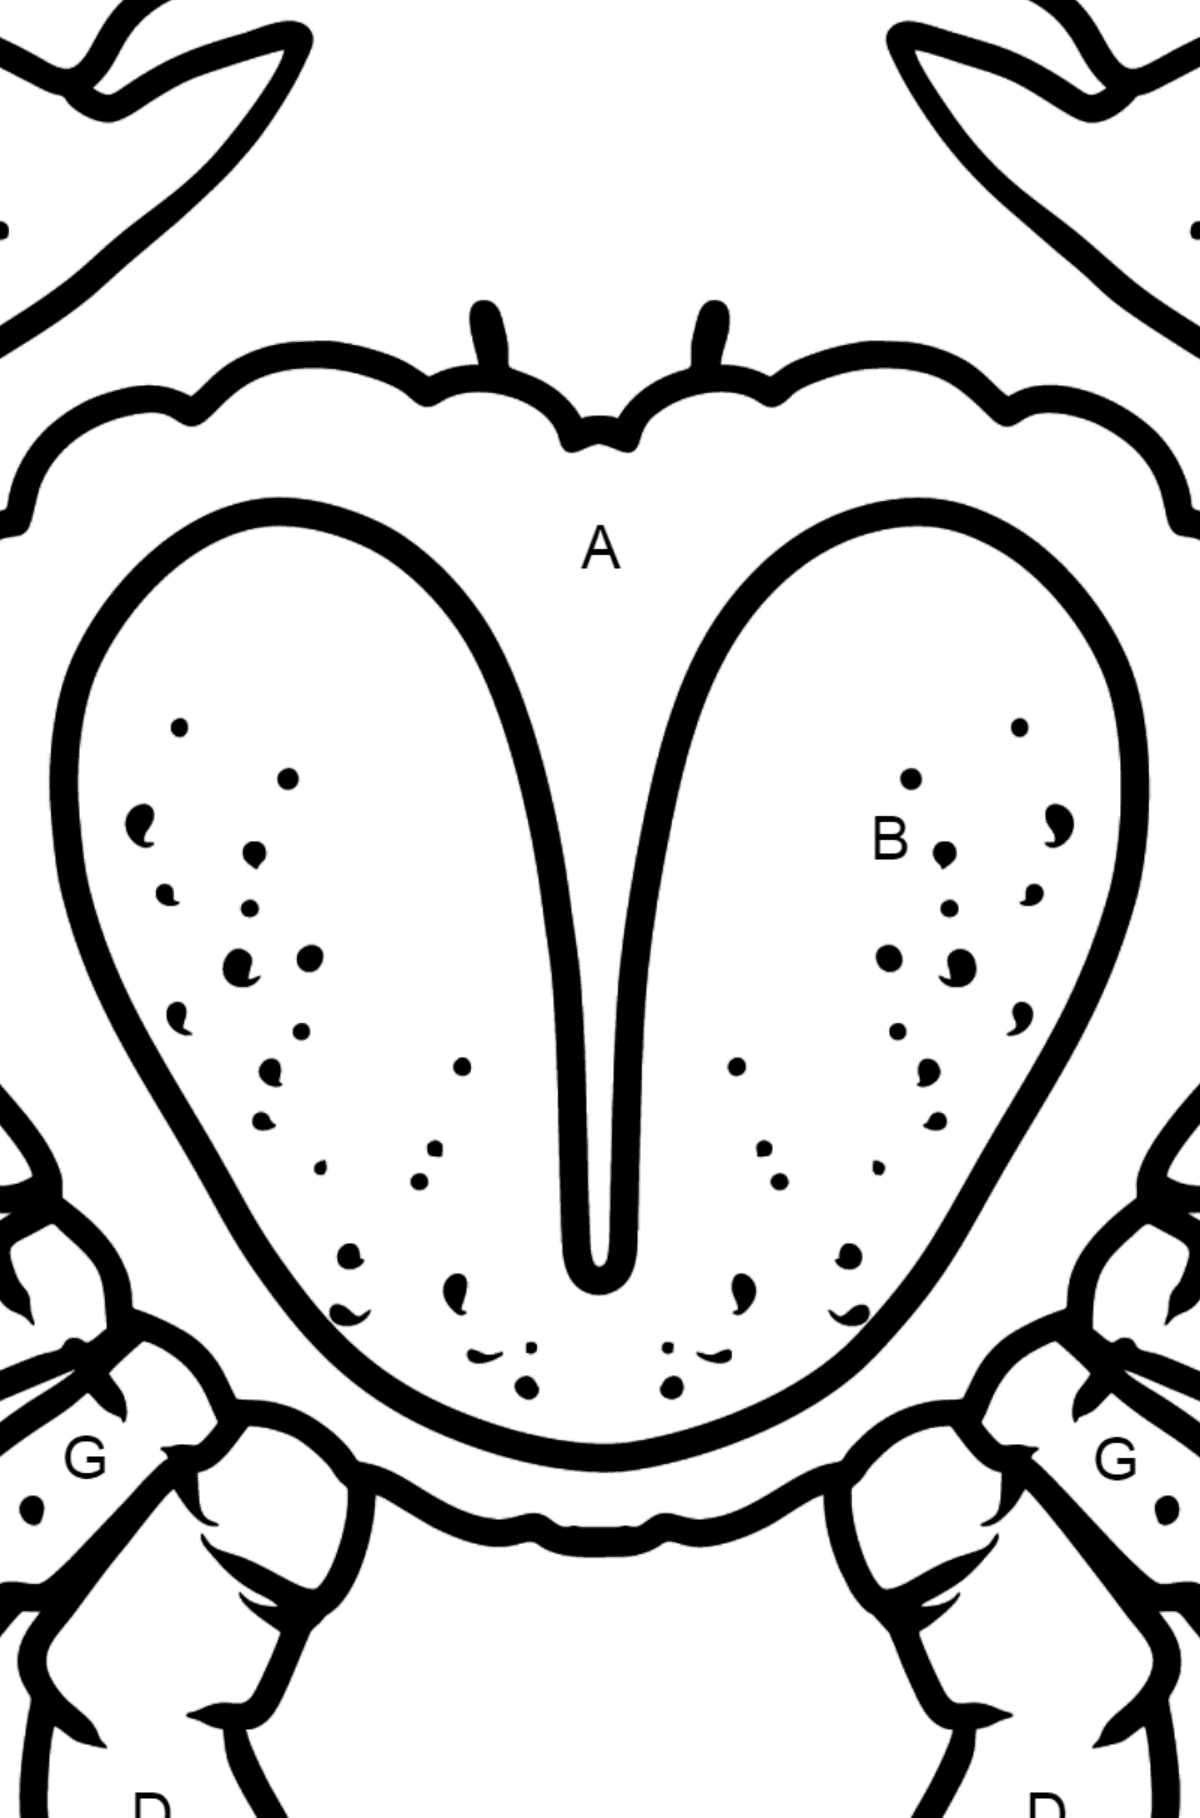 Crab coloring page - Coloring by Letters for Kids